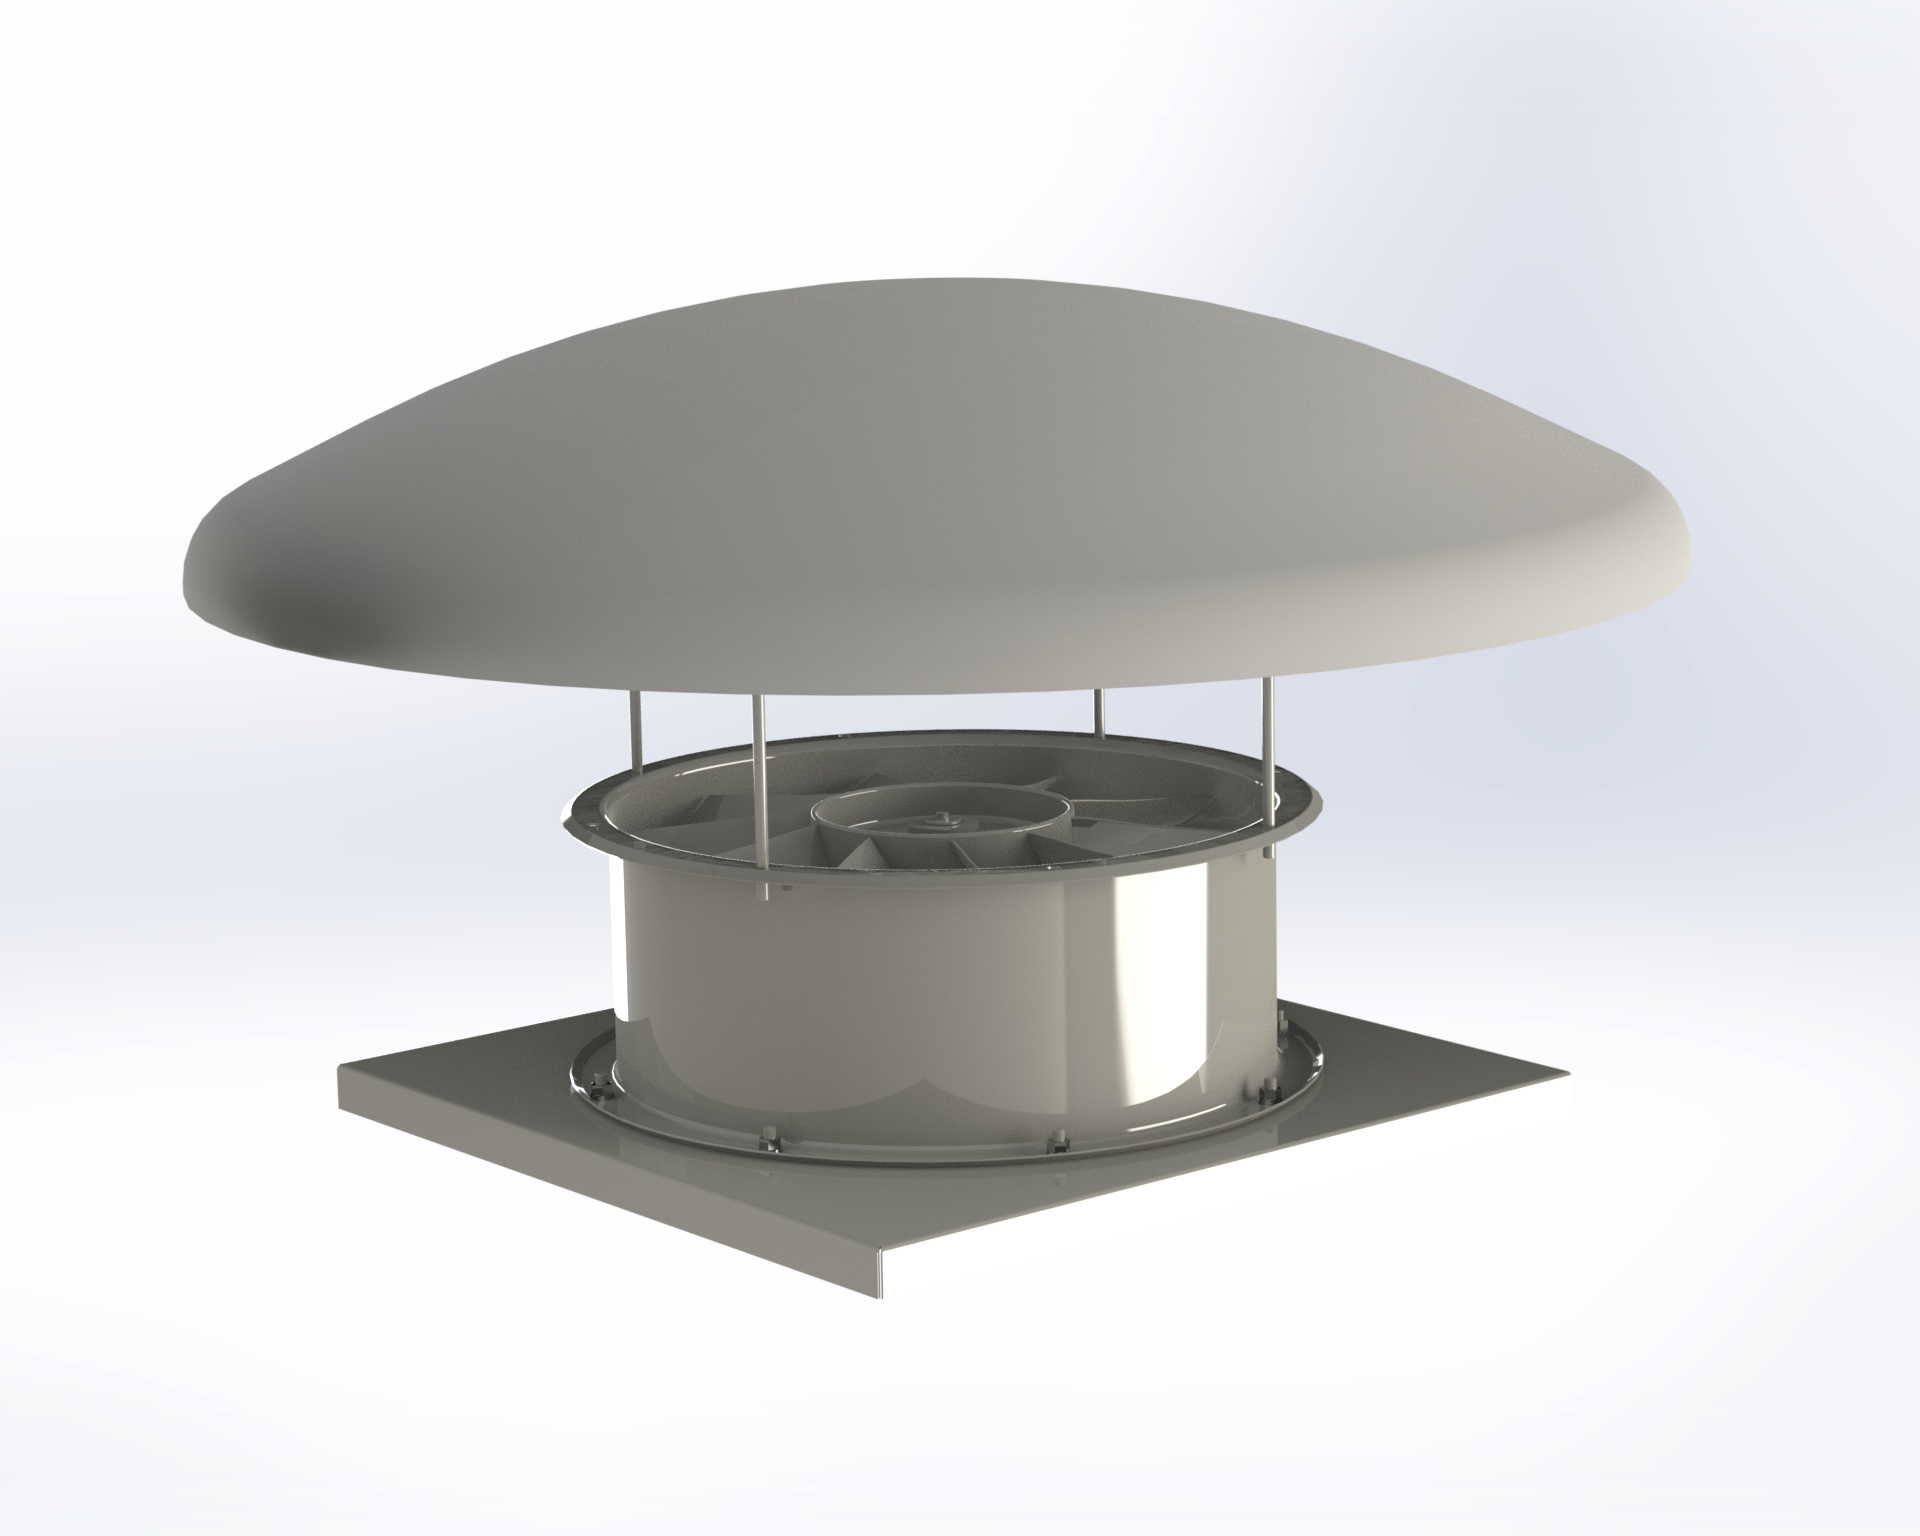 Axial-flow fan with light alloy die-cast impeller with wing-profile blades.